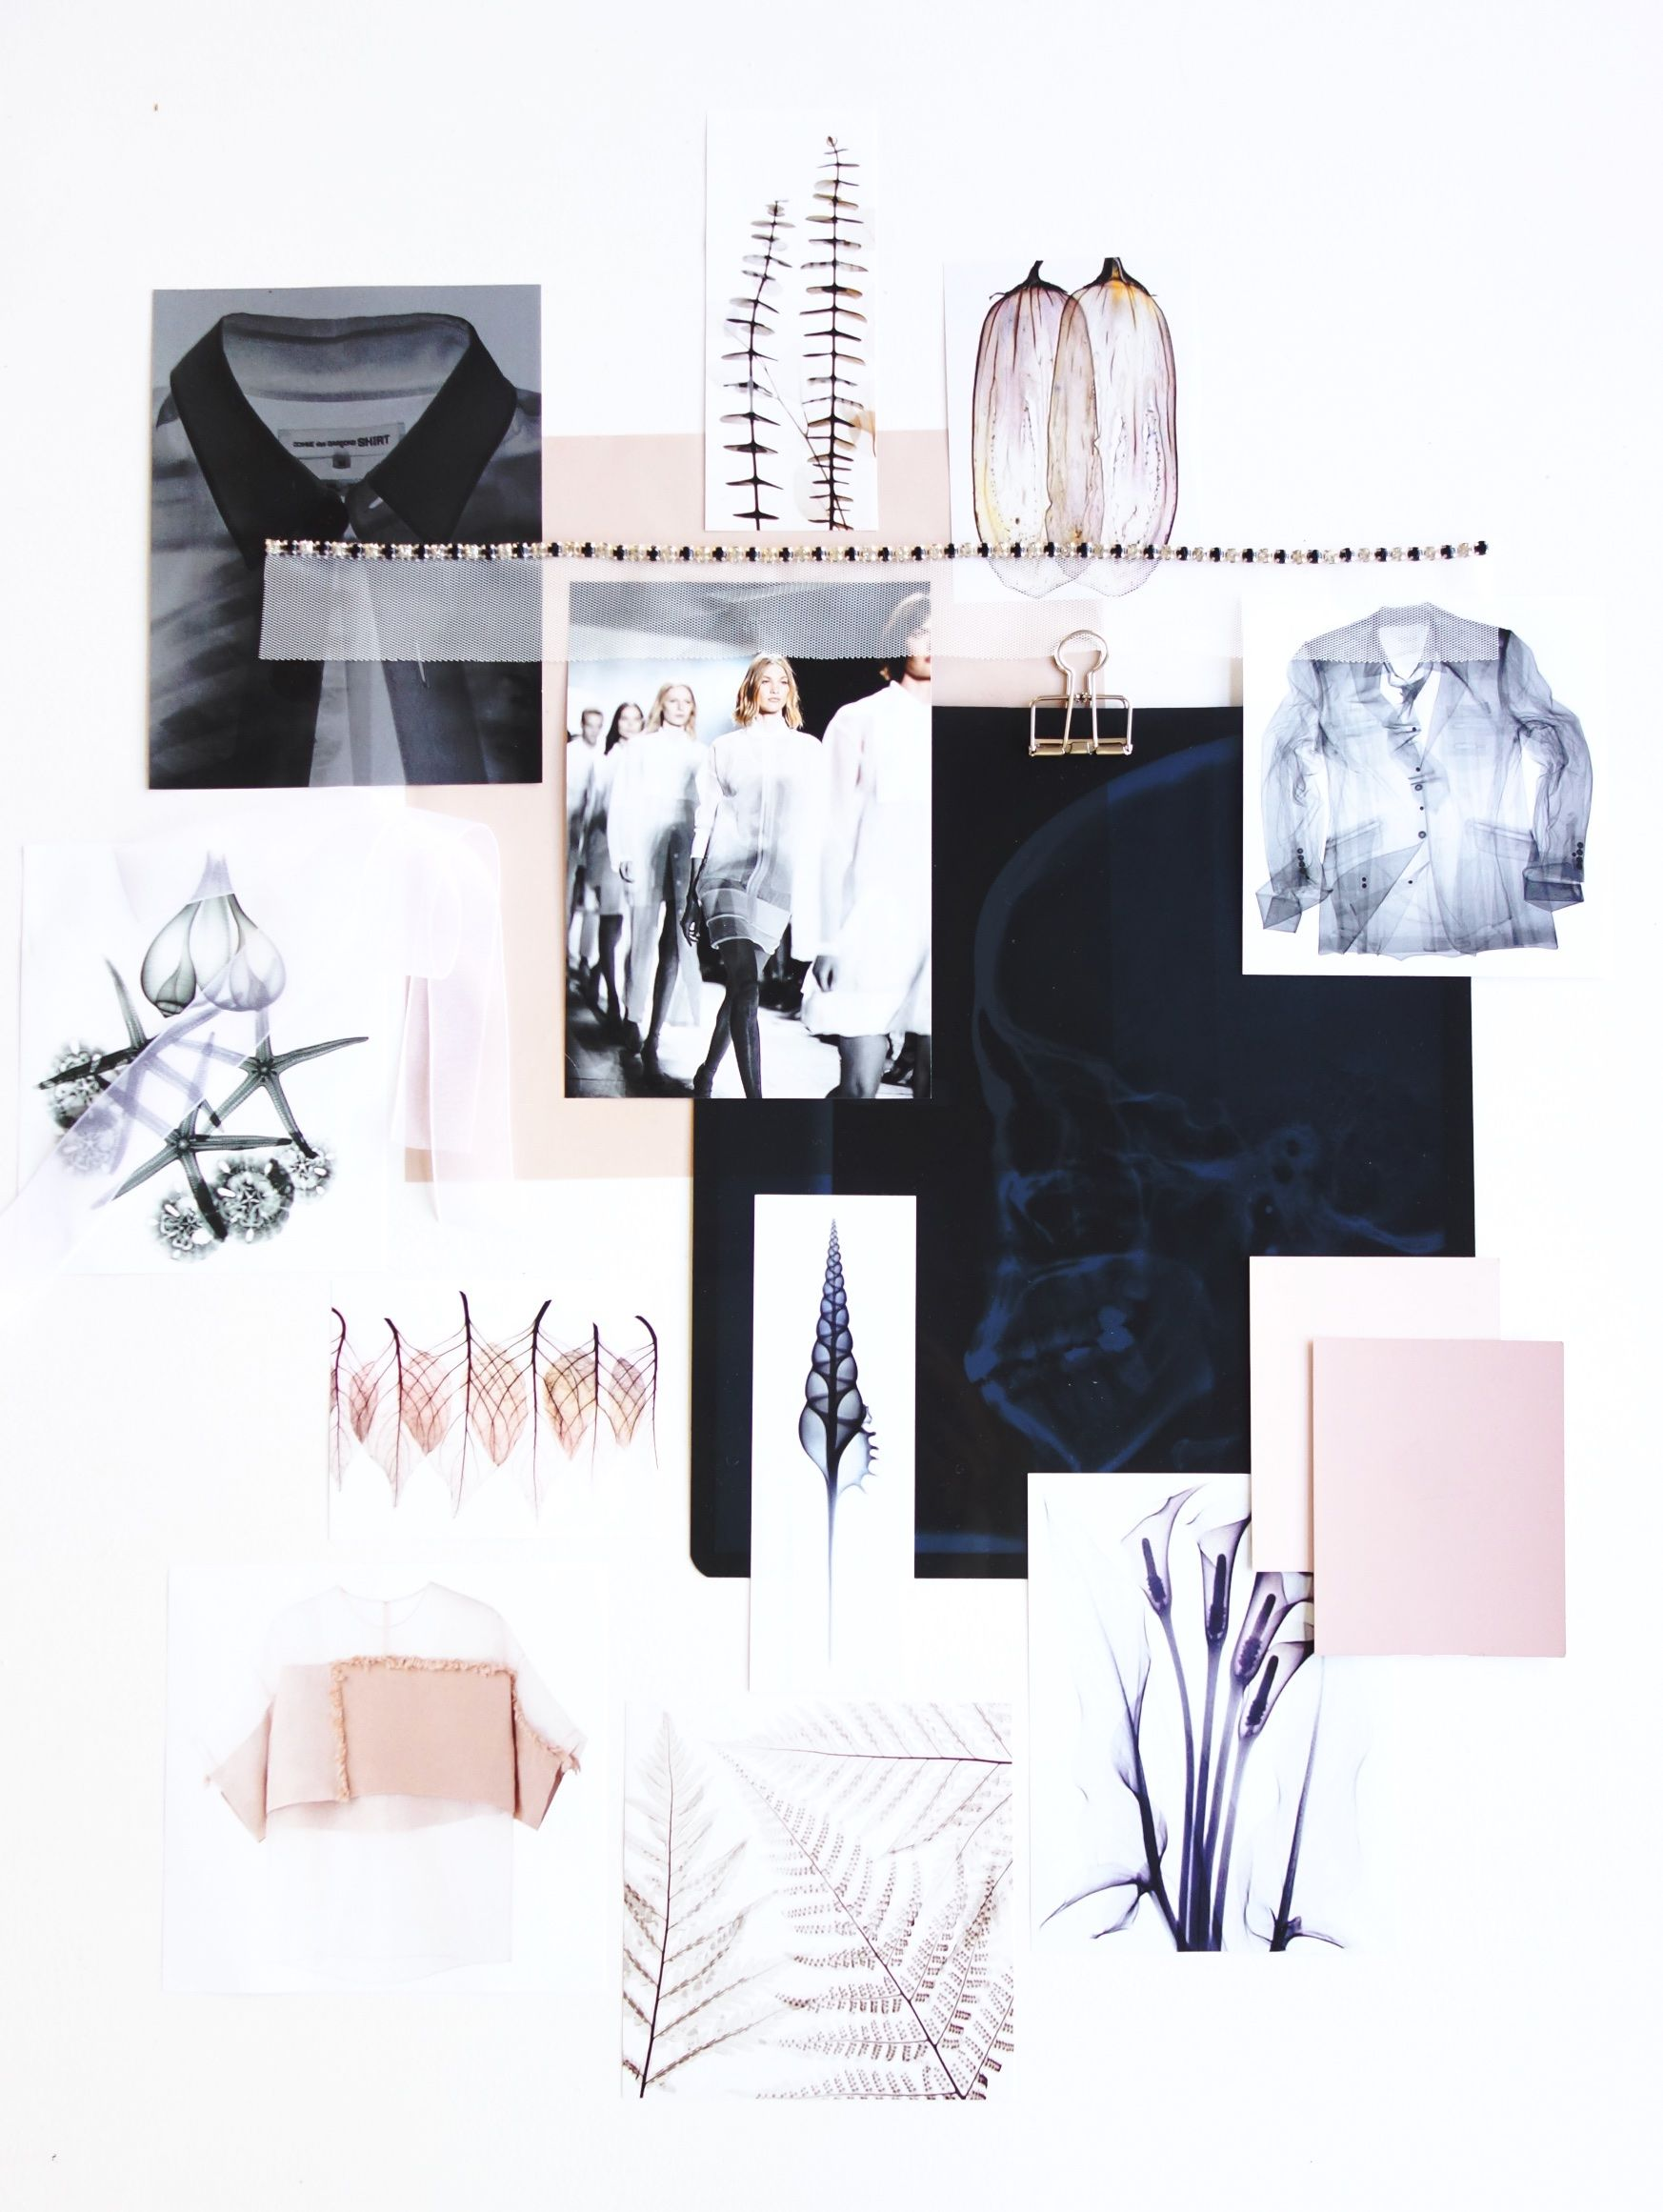 How To Create A Well Structured Mood Board Video Course Presented By Gudy Herder Mood Board Design Mood Board Fashion Mood Board Inspiration